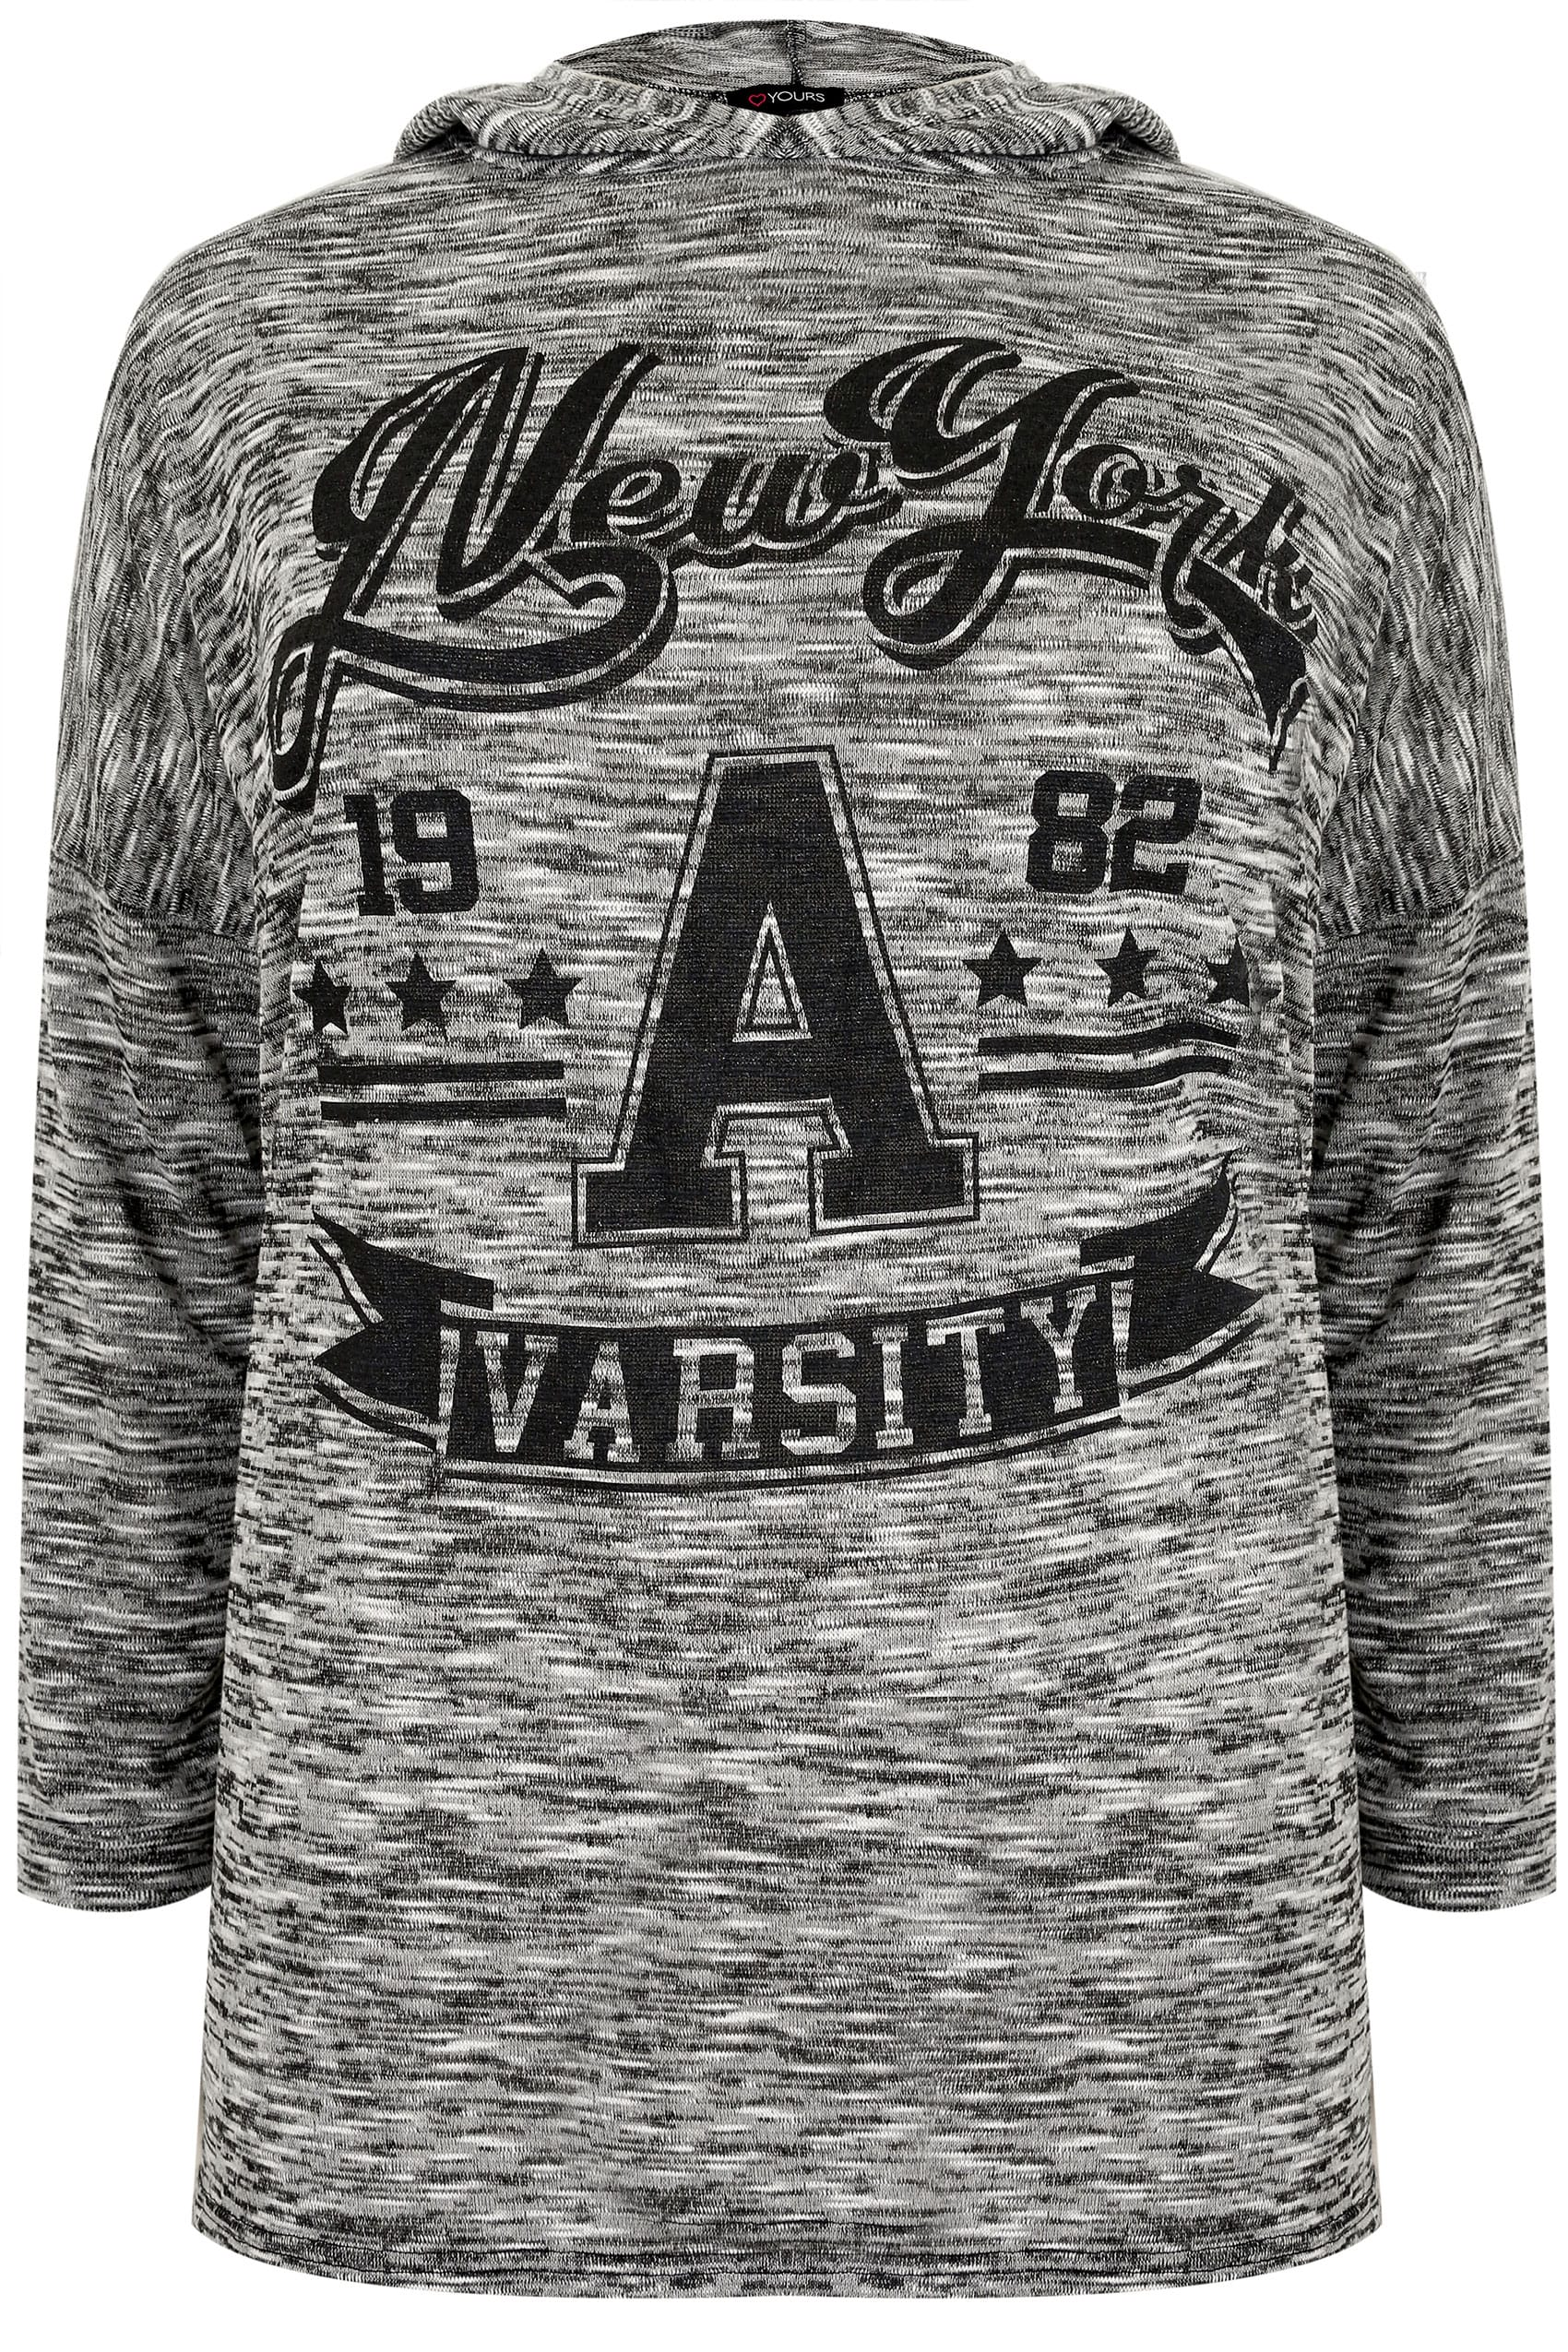 countries with 7 letters in name grauer quot new york varsity quot feinstrickpullover mit kapuze 26961 | Grey Fine Knit New York Varsity Hooded Jumper 132455 ff67